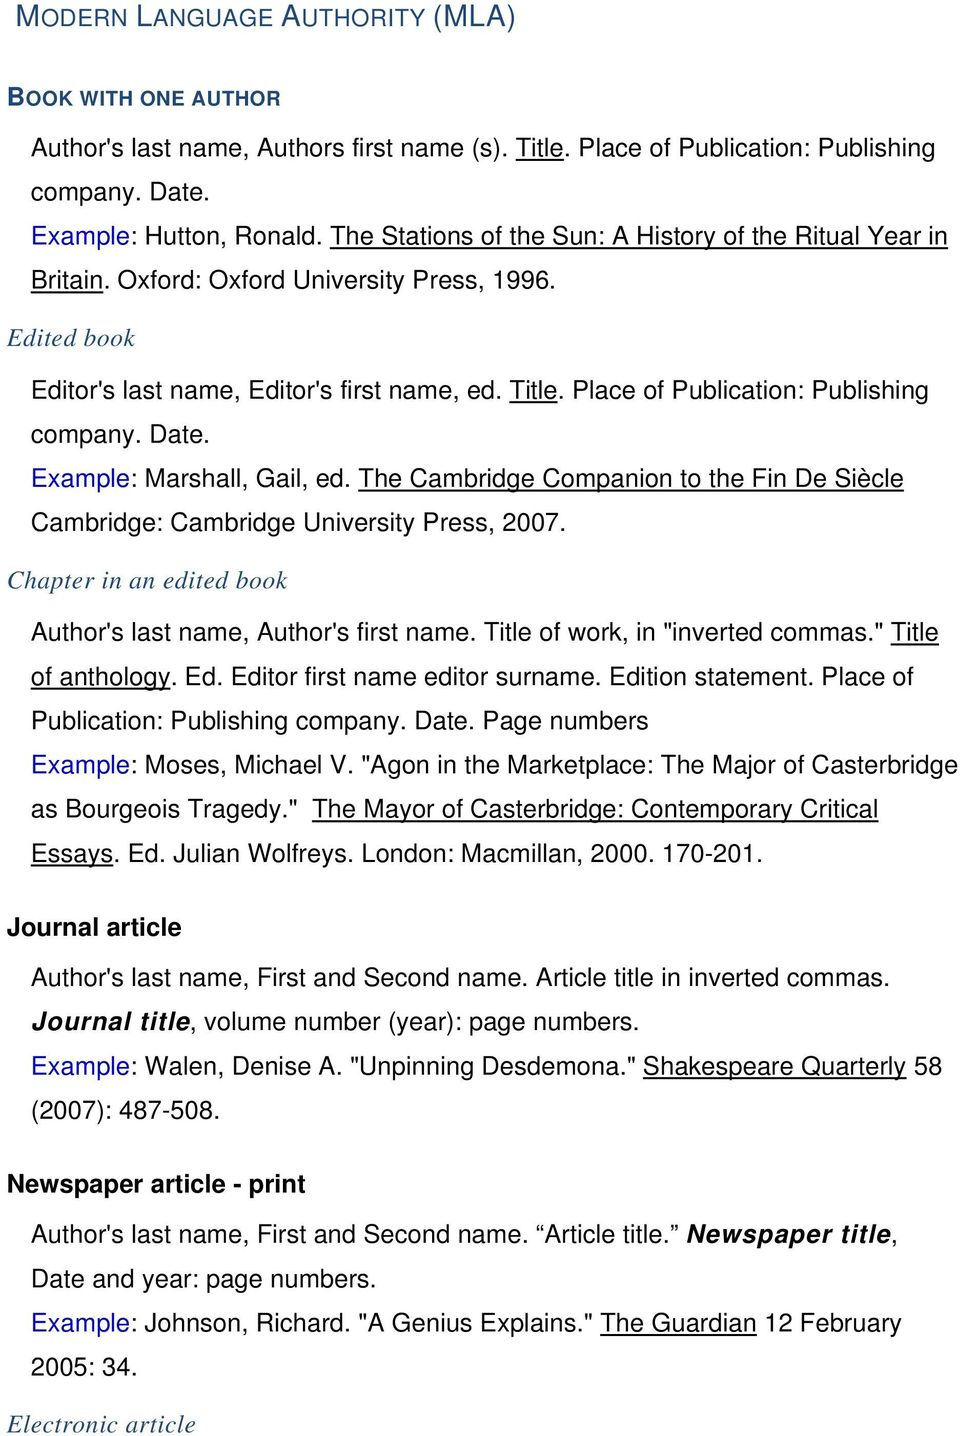 Place of Publication: Publishing company. Date. Example: Marshall, Gail, ed. The Cambridge Companion to the Fin De Siècle Cambridge: Cambridge University Press, 2007.